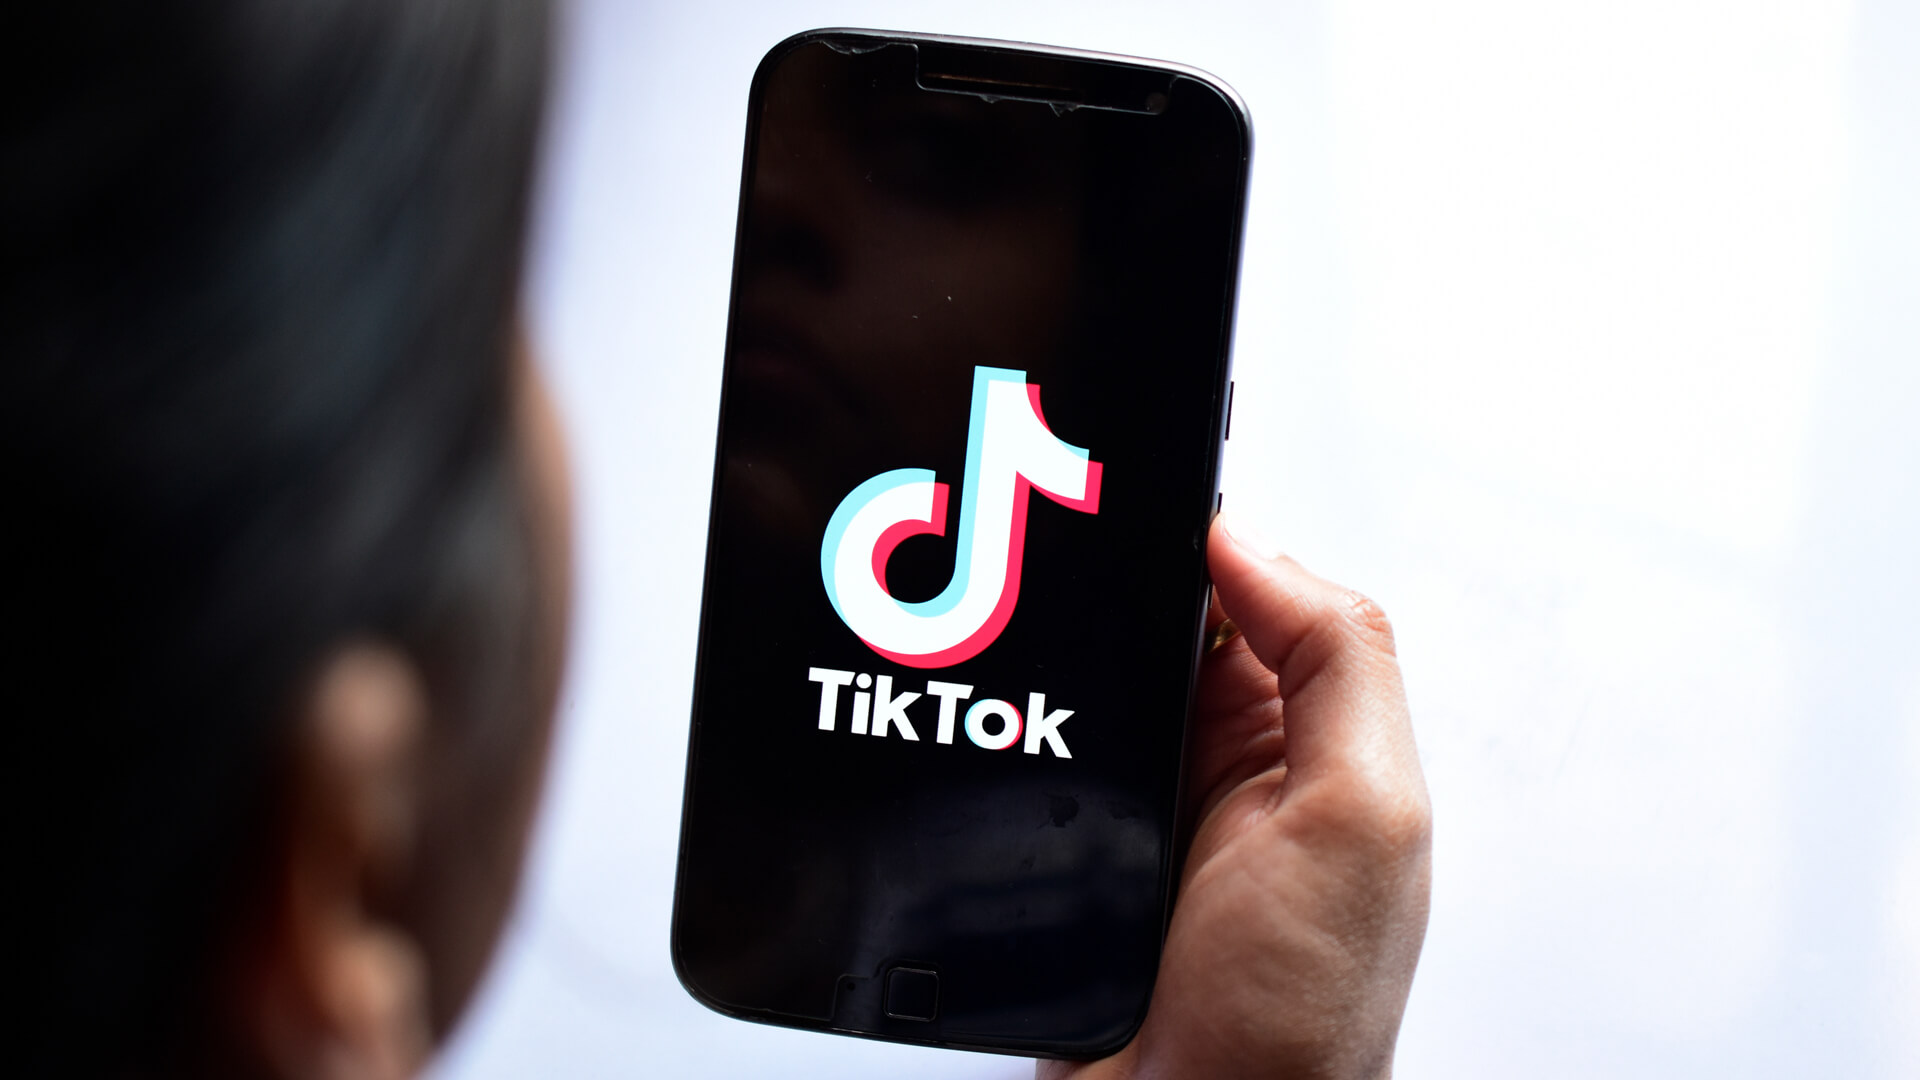 New Delhi, India - April 23, 2019: Woman holding motorola phone with ban streaming service media and video TikTok application on the screen.